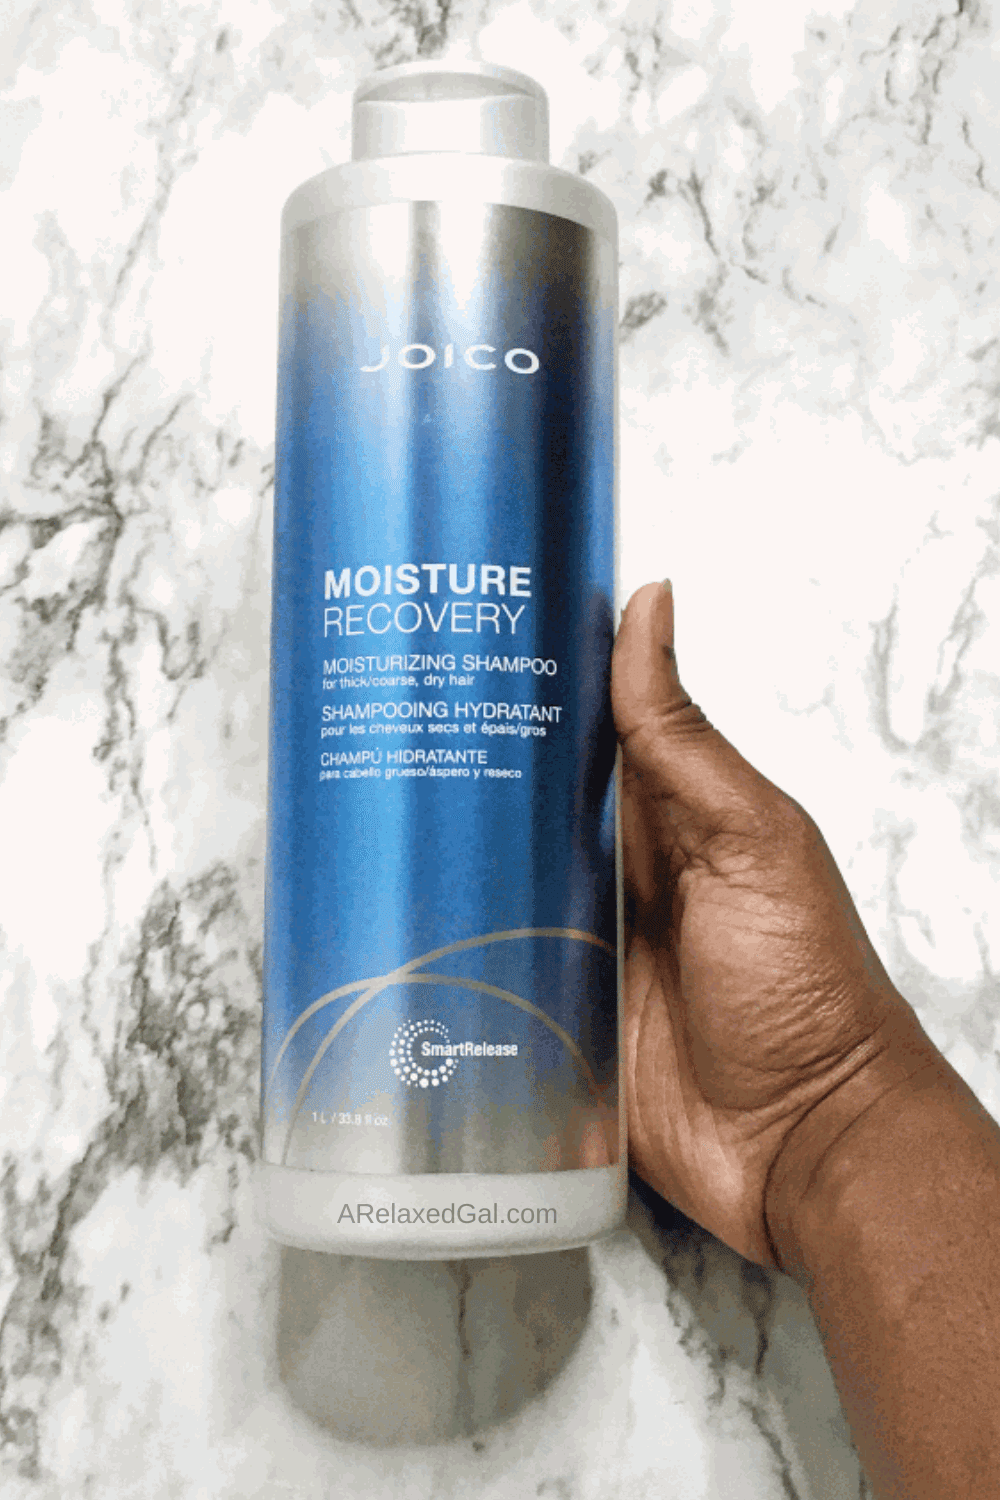 Joico Moisture Recovery Shampoo Review | A Relaxed Gal